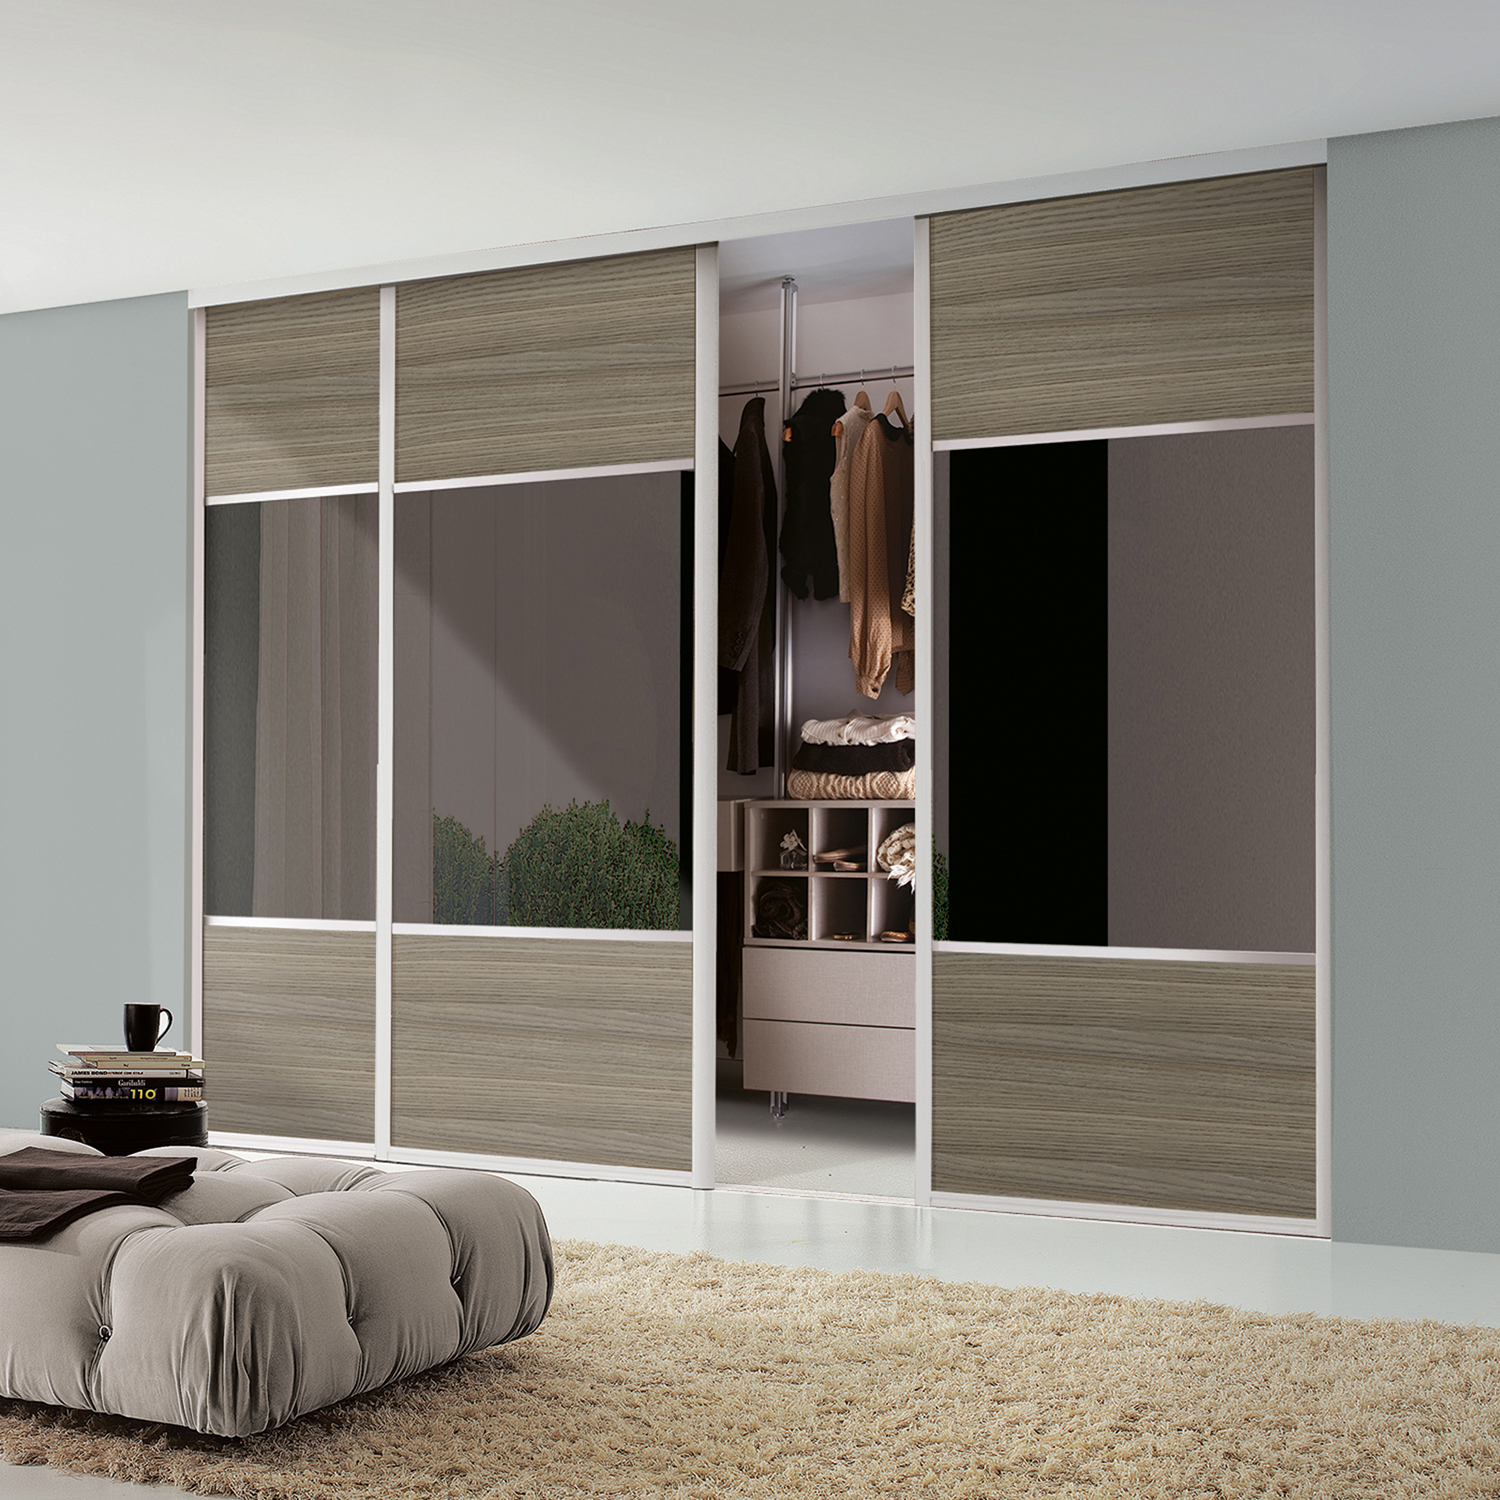 Sliding Wardrobe Doors From Sliding Wardrobe World